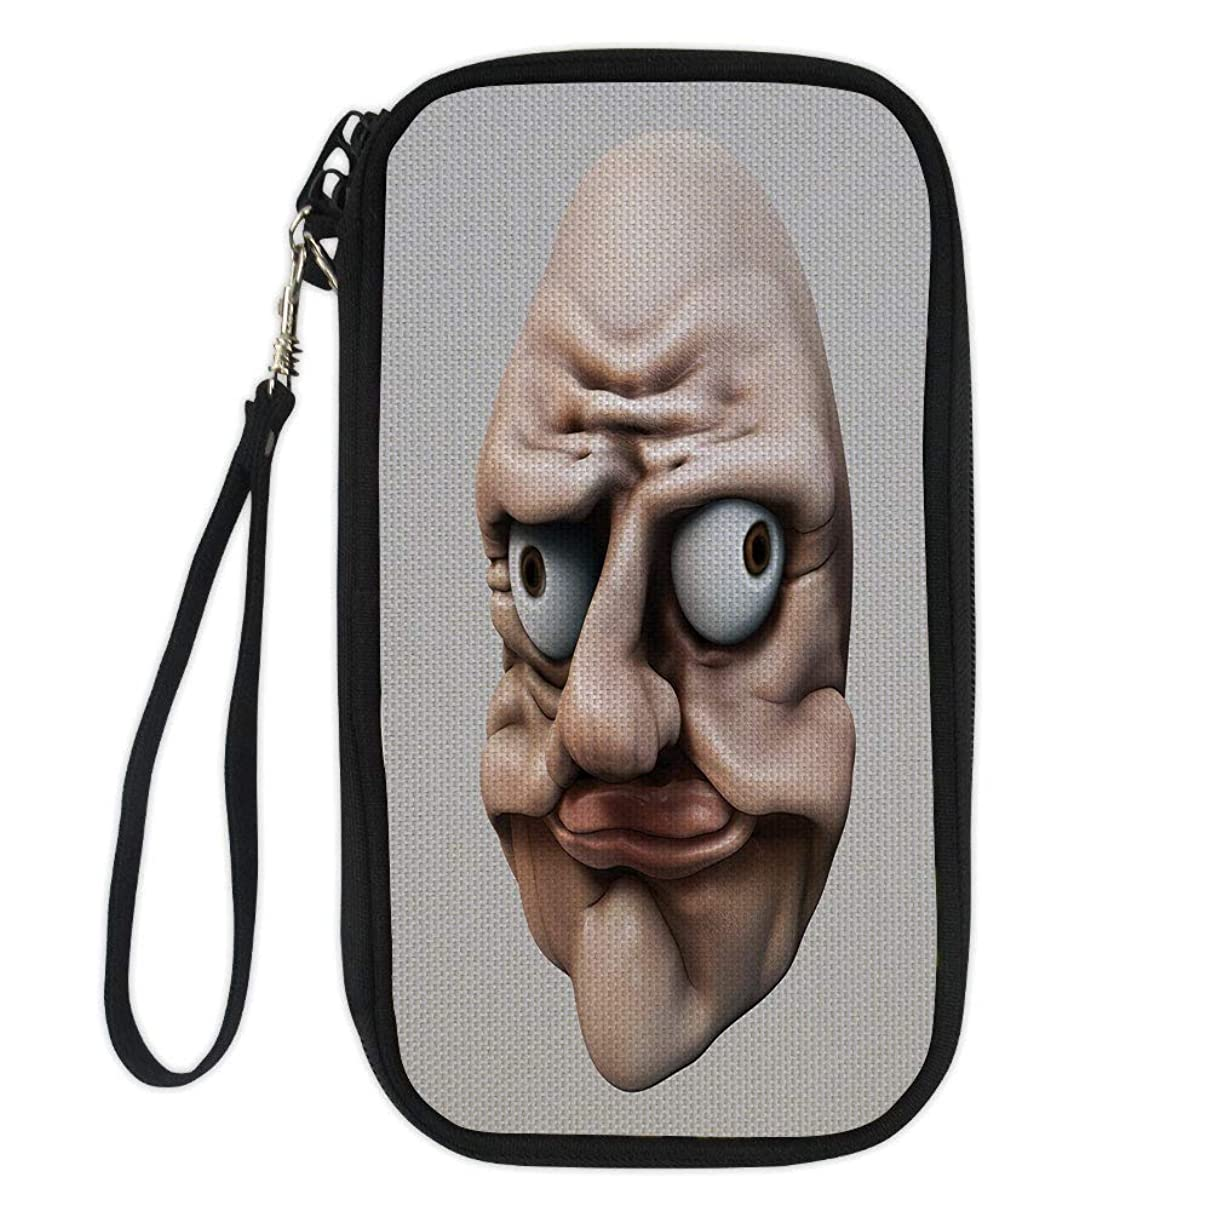 iPrint Humor,Grumpy Internet Troll Face with Trippy Gestures Ugly Post Meme Joke Image Decorative,Egg Shell and Tan for Women Canvas Document Organizer Clutch